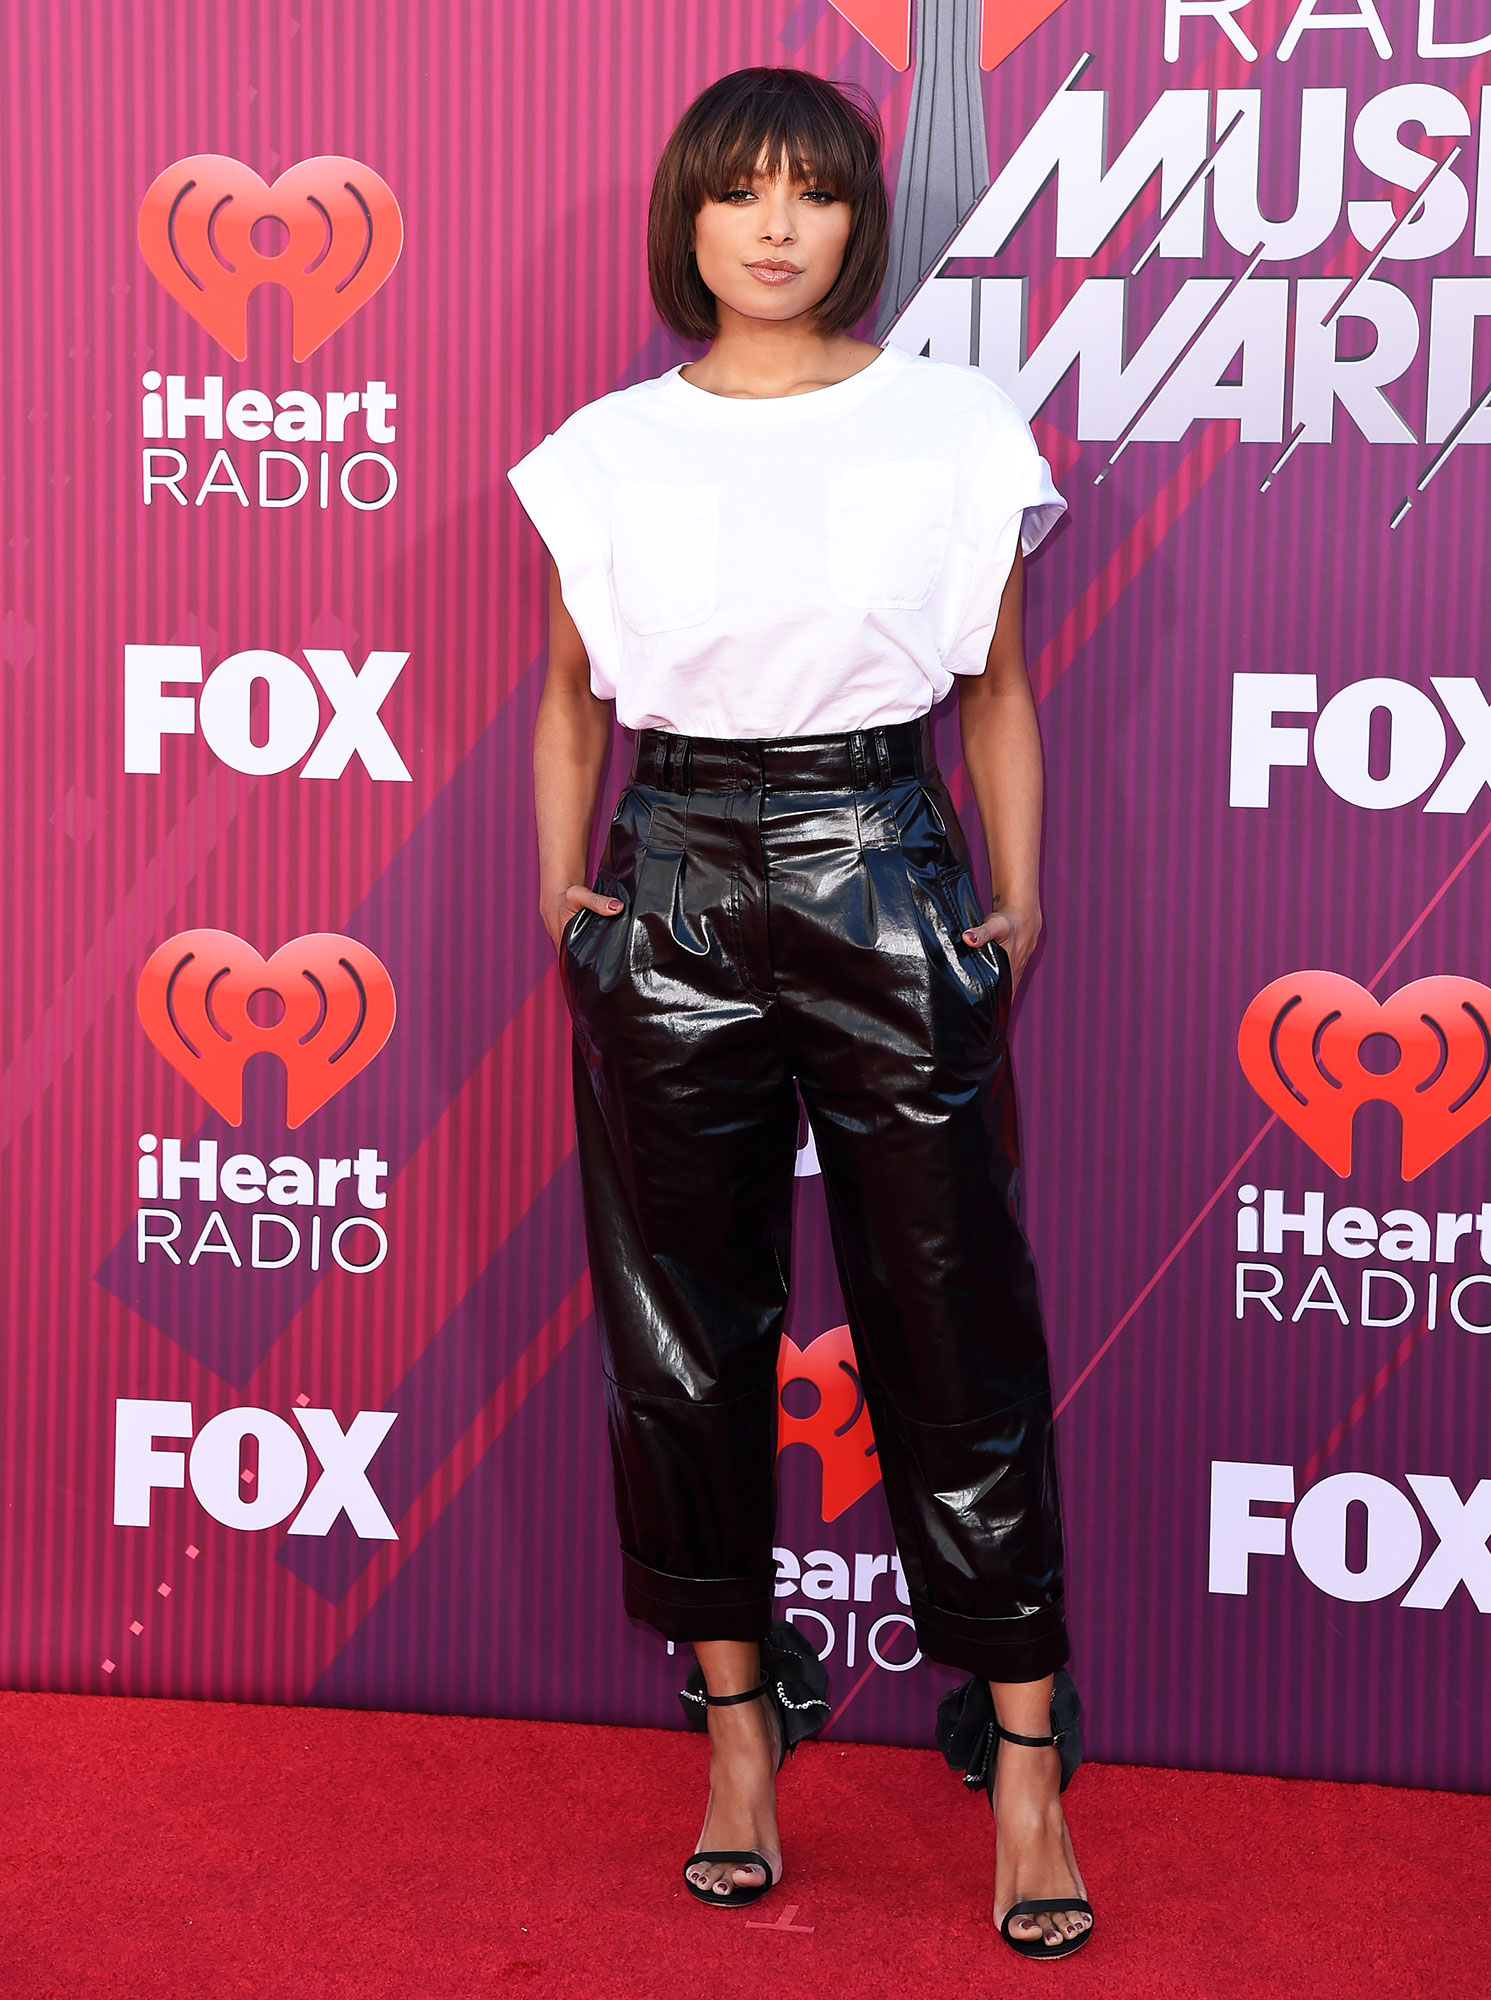 Kat Graham See What the Stars Wore to the iHeart Radio Music Awards 2019 - Wearing a white Alberta Ferretti tops with Philosophy di Lorenzo Serafini leather pants, Giuseppe Zanotti heels and AUrate and Hearts On Fire jewels.